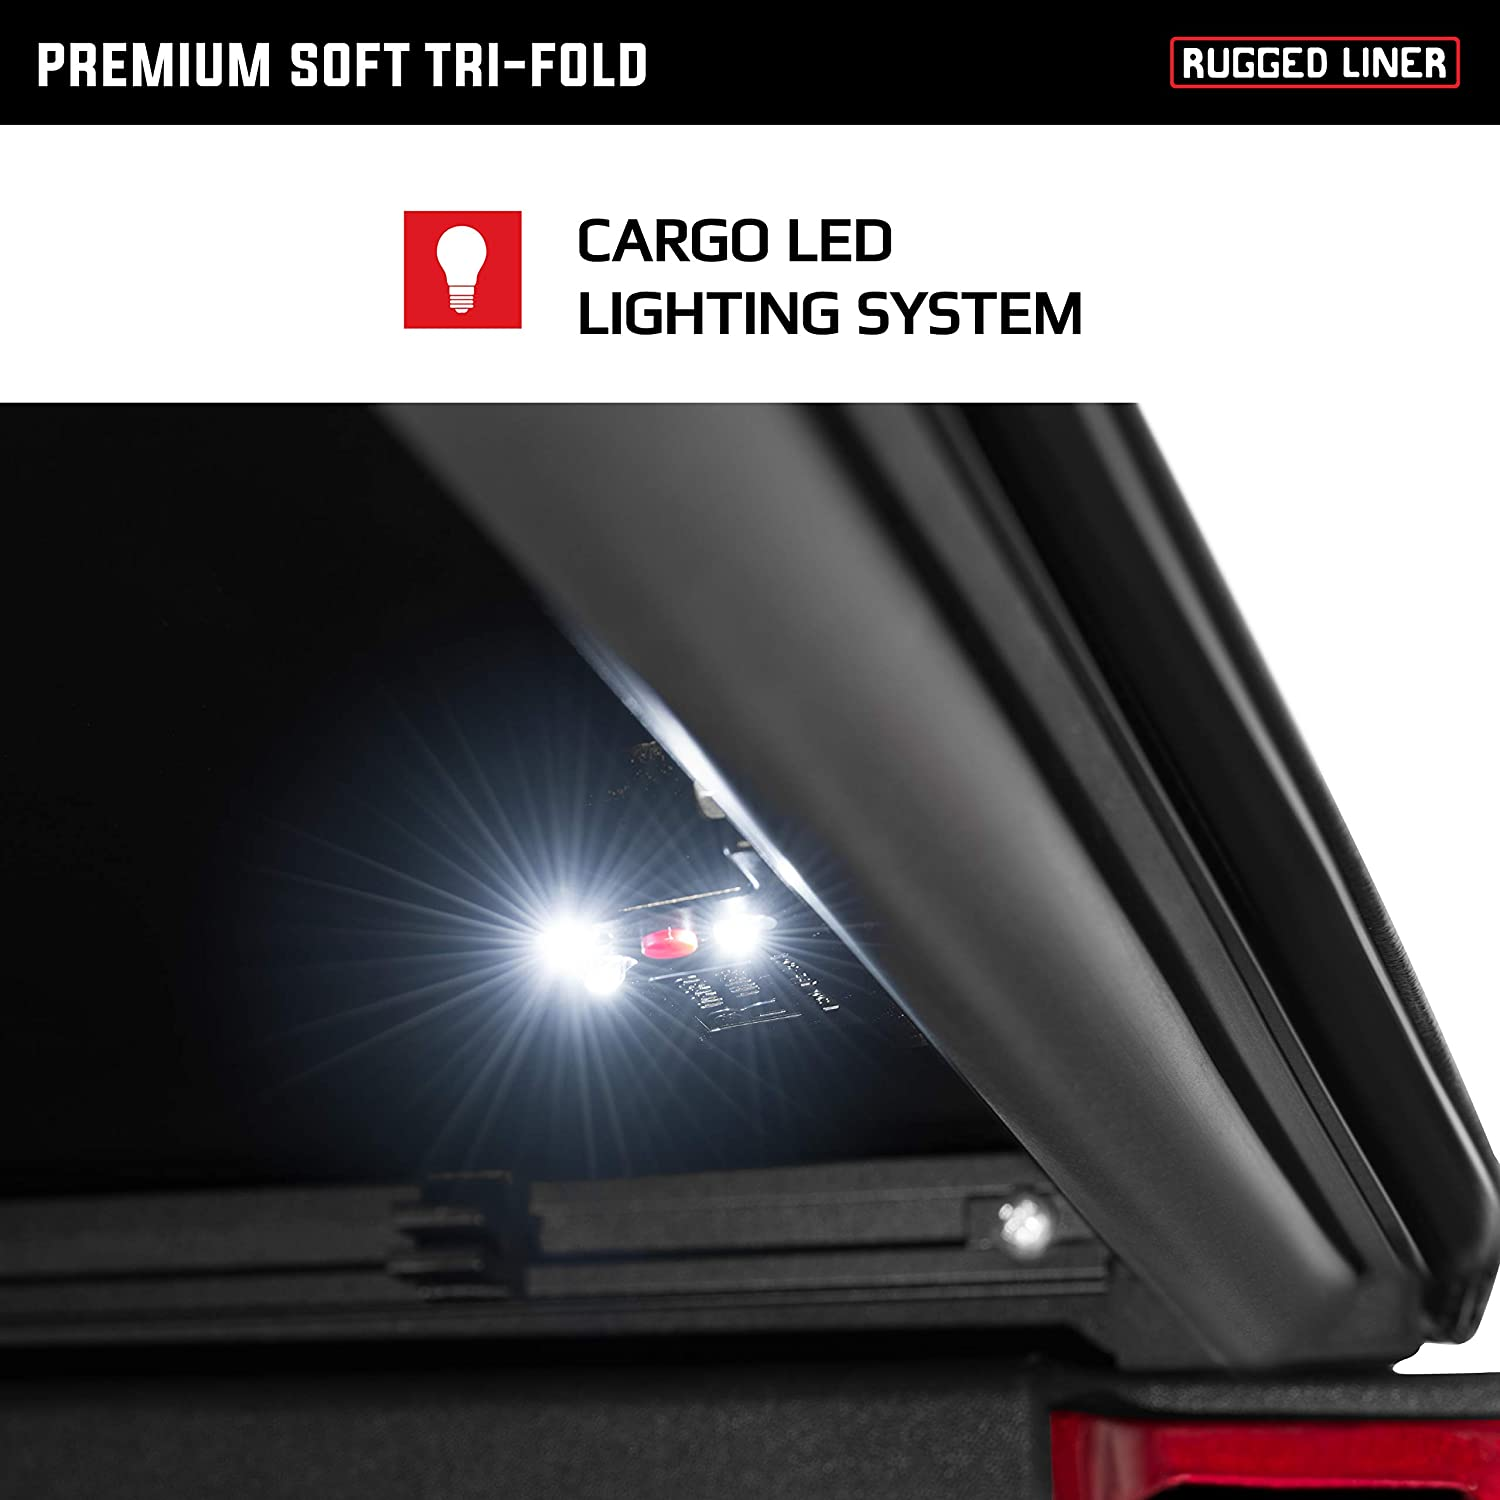 Amazon Com Rugged Liner Premium Soft Folding Truck Bed Tonneau Cover Fct605 Fits 2005 2015 Toyota Tacoma 6 2 Bed 73 5 Automotive